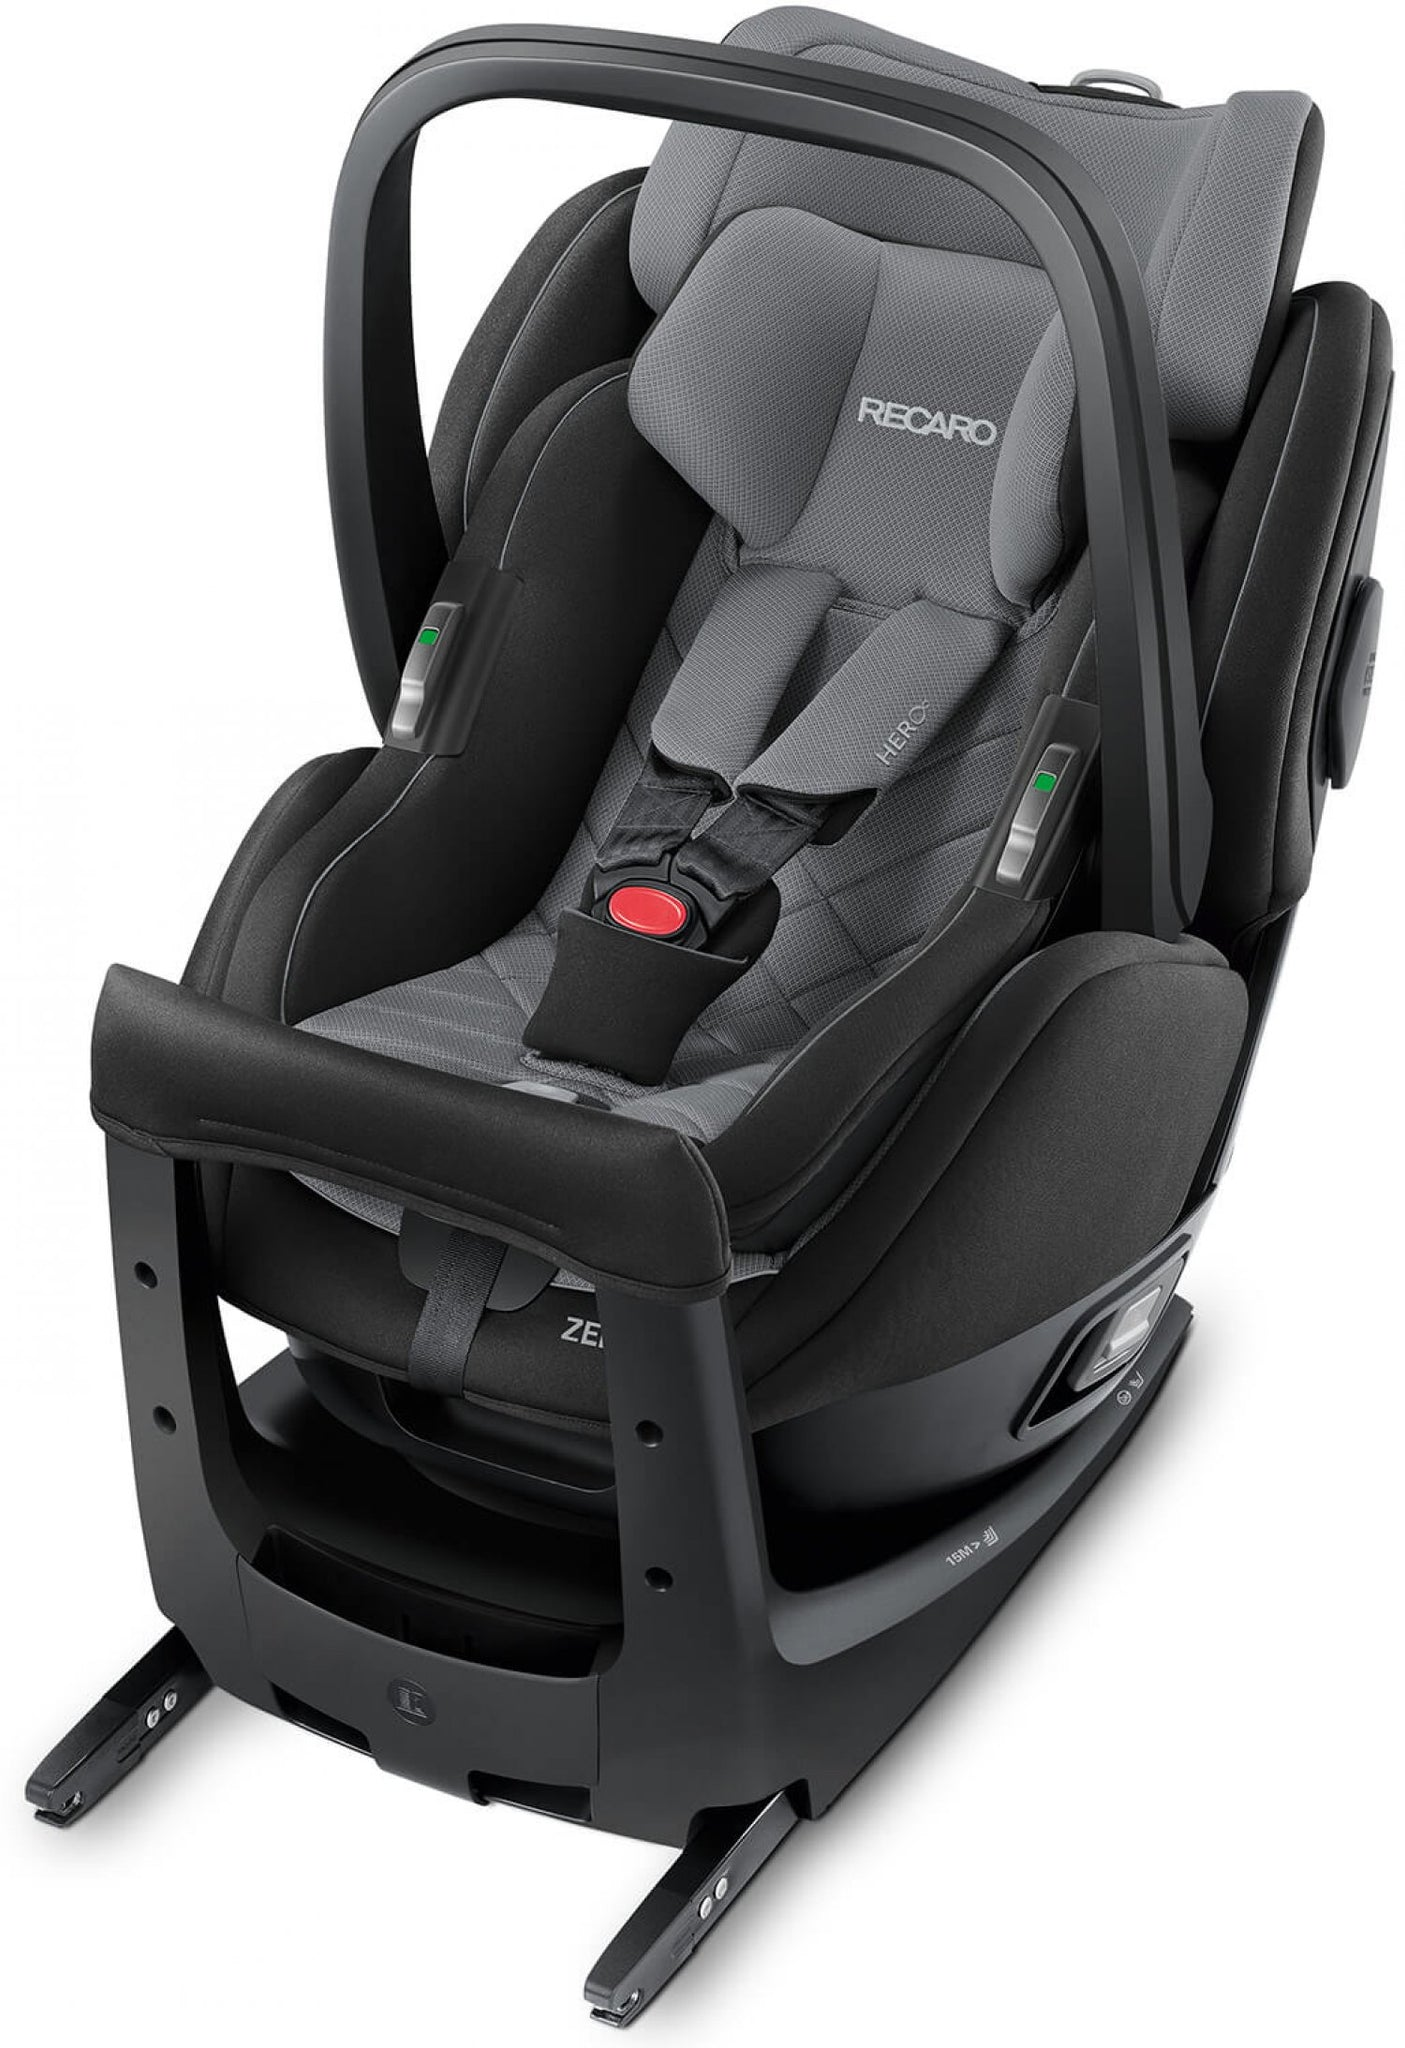 Recaro Zero One Elite I-Size Car Seat-Car Seats-Recaro-Carbon Black-www.hellomom.co.za